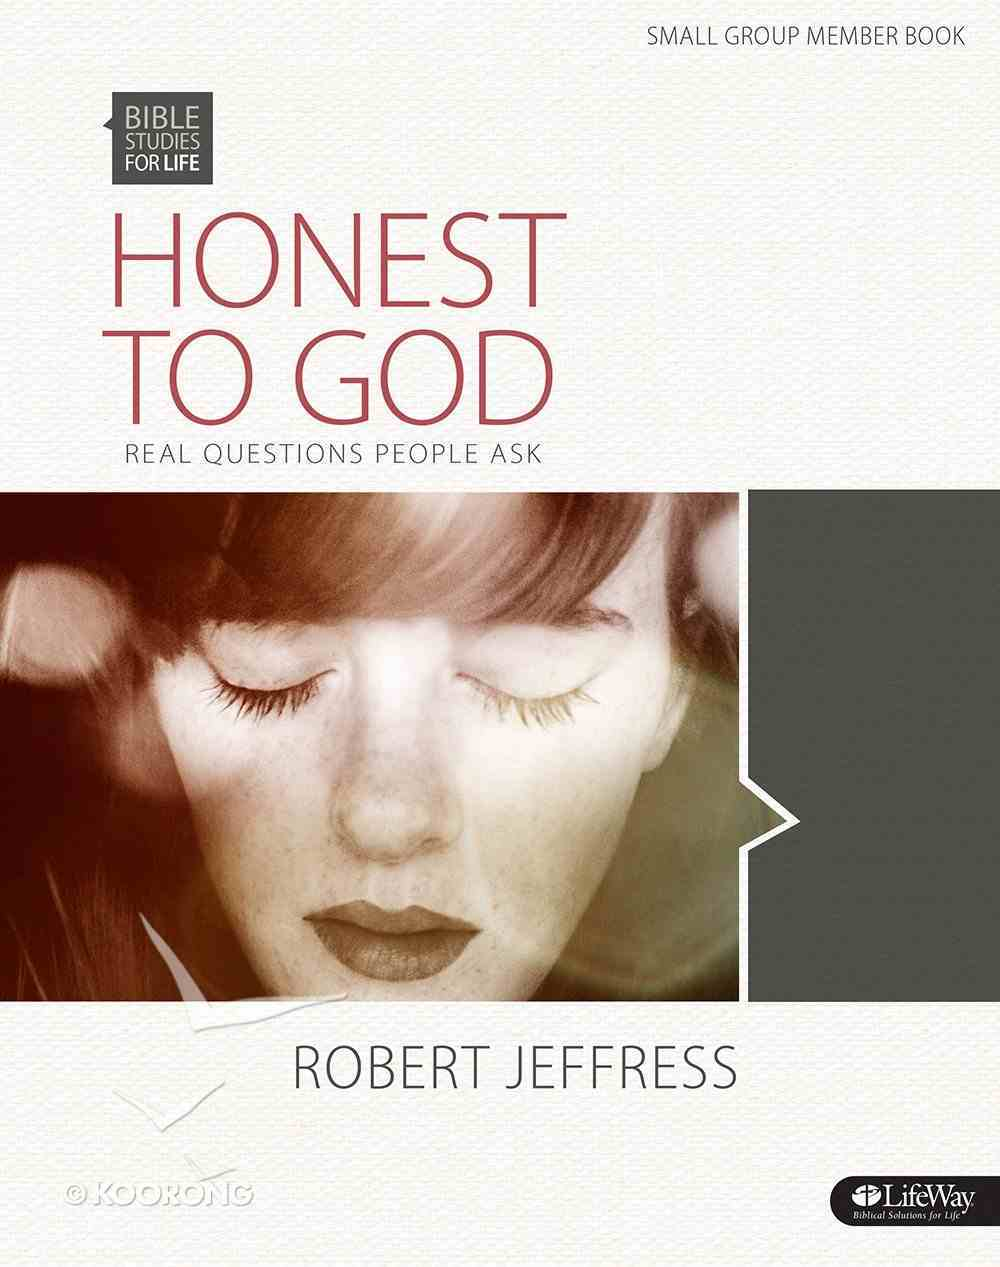 Honest to God Real Questions People Ask (Member Book) (Bible Studies For Life Series) Paperback